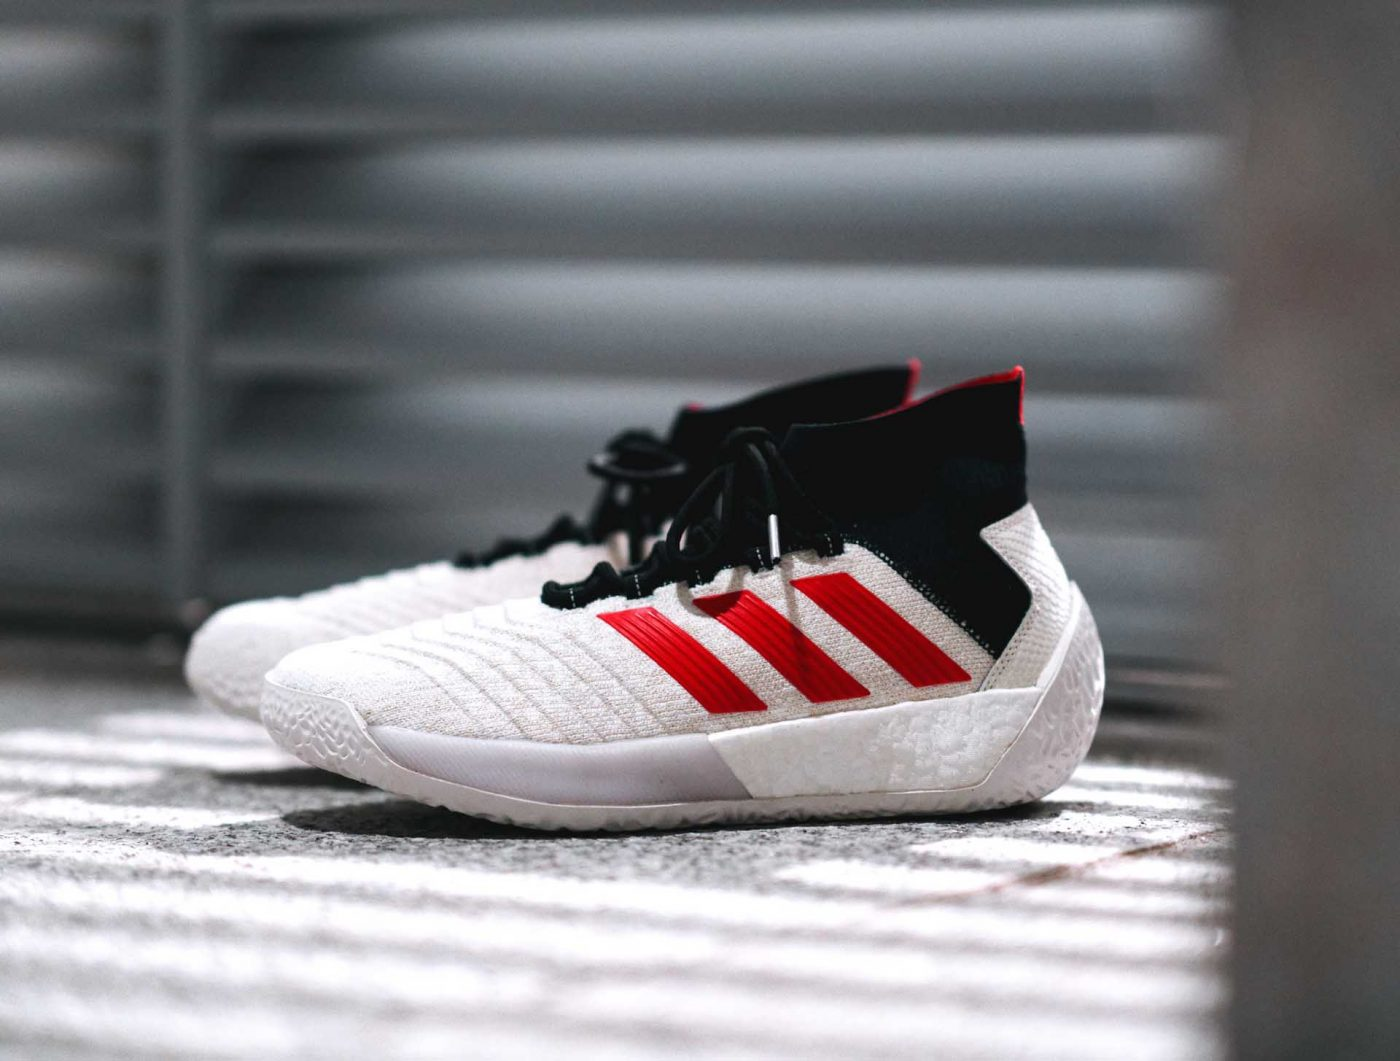 chaussures-football-adidas-predator-19-paul-pogba-streetwear-collection-5-footpack-avril-2019-